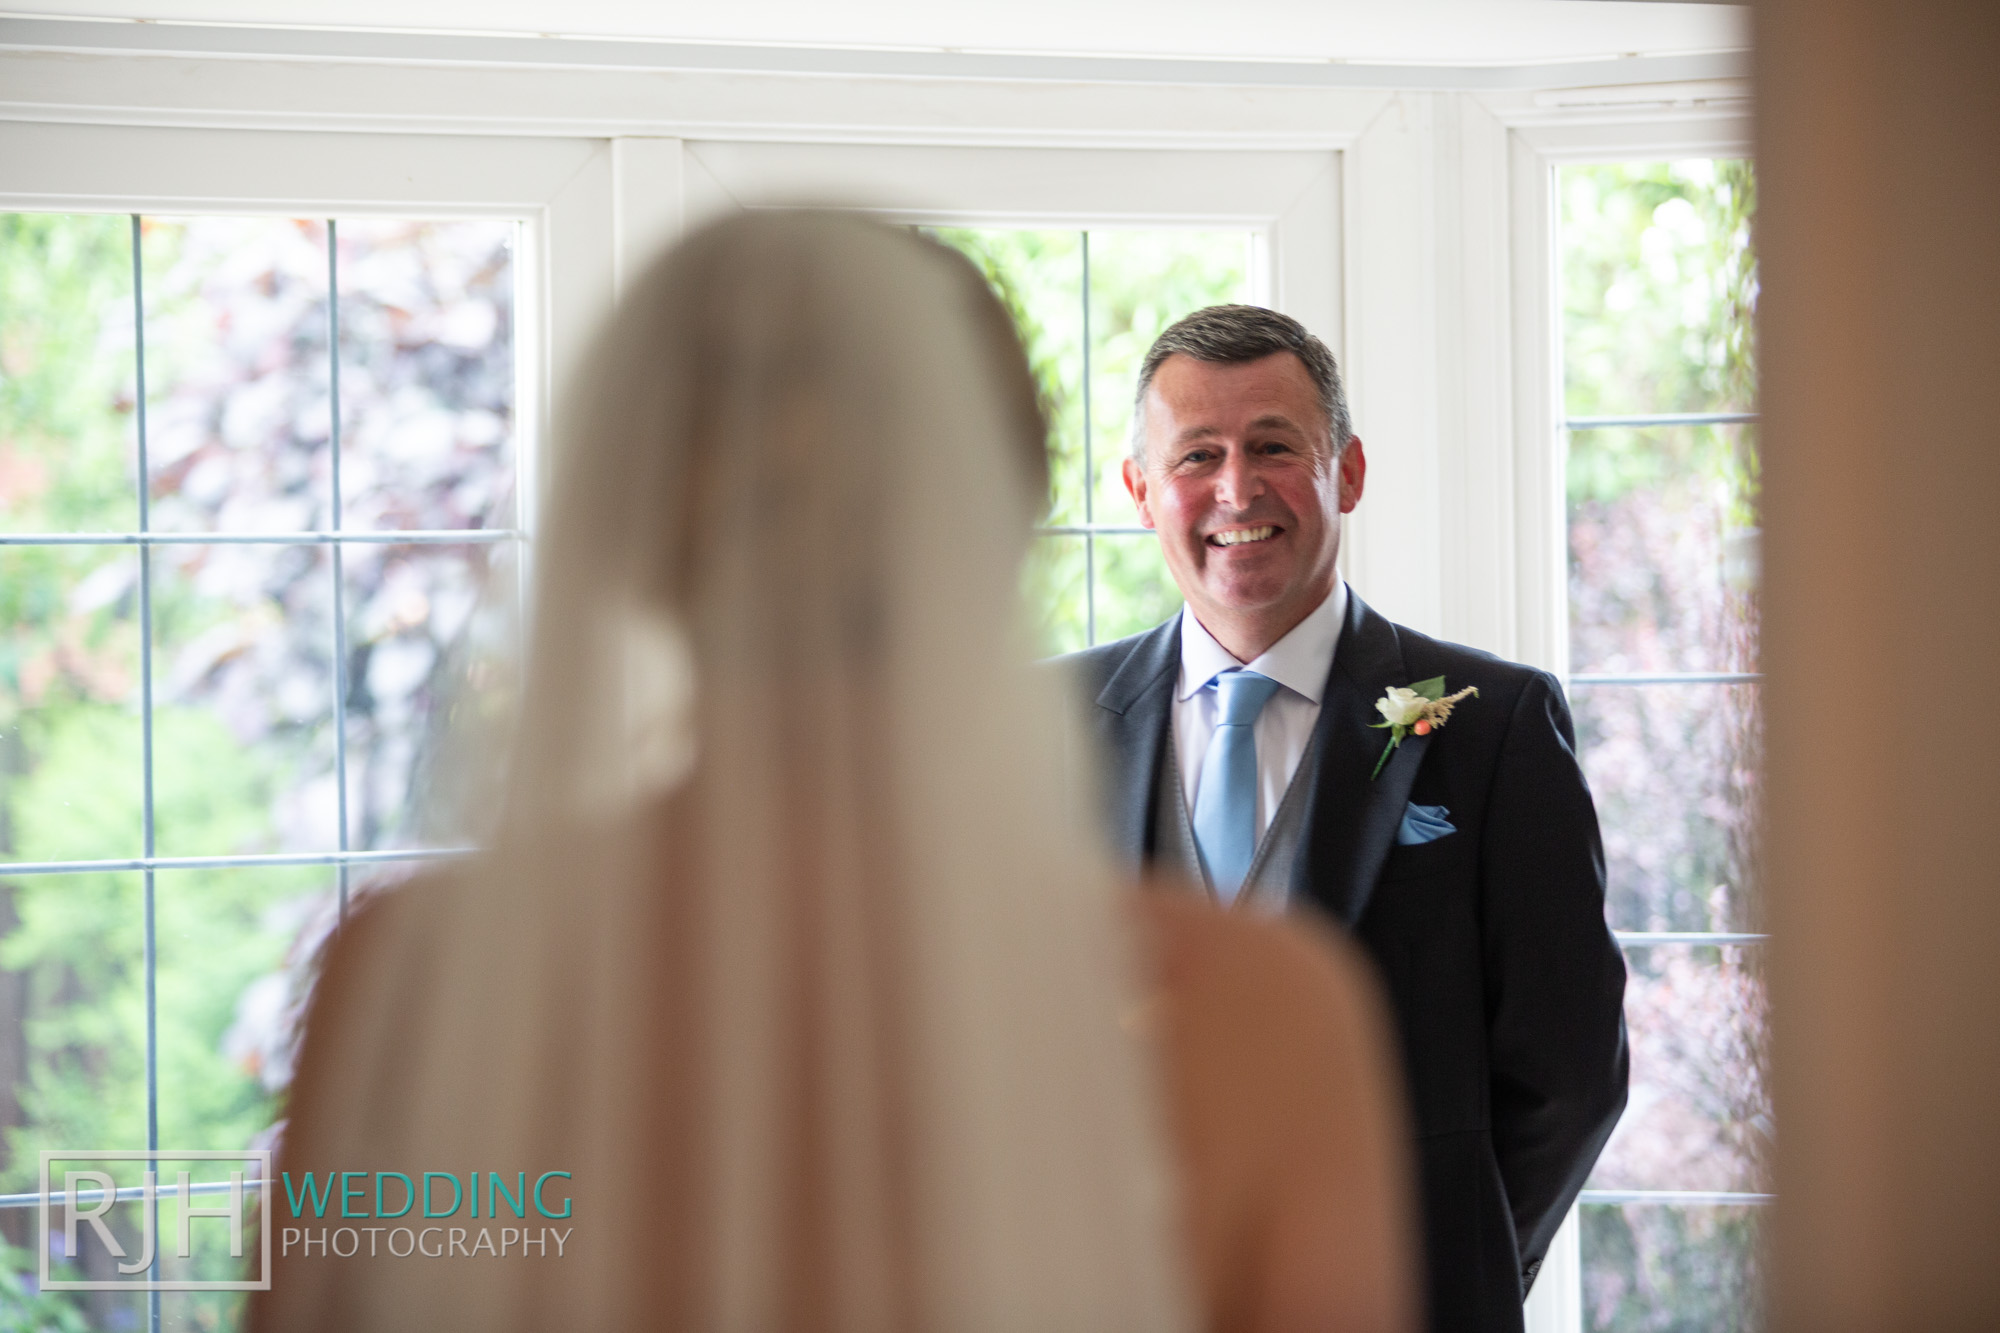 Aston Hall Hotel Wedding Photography_Dowell Wedding_024_3C2A3788.jpg